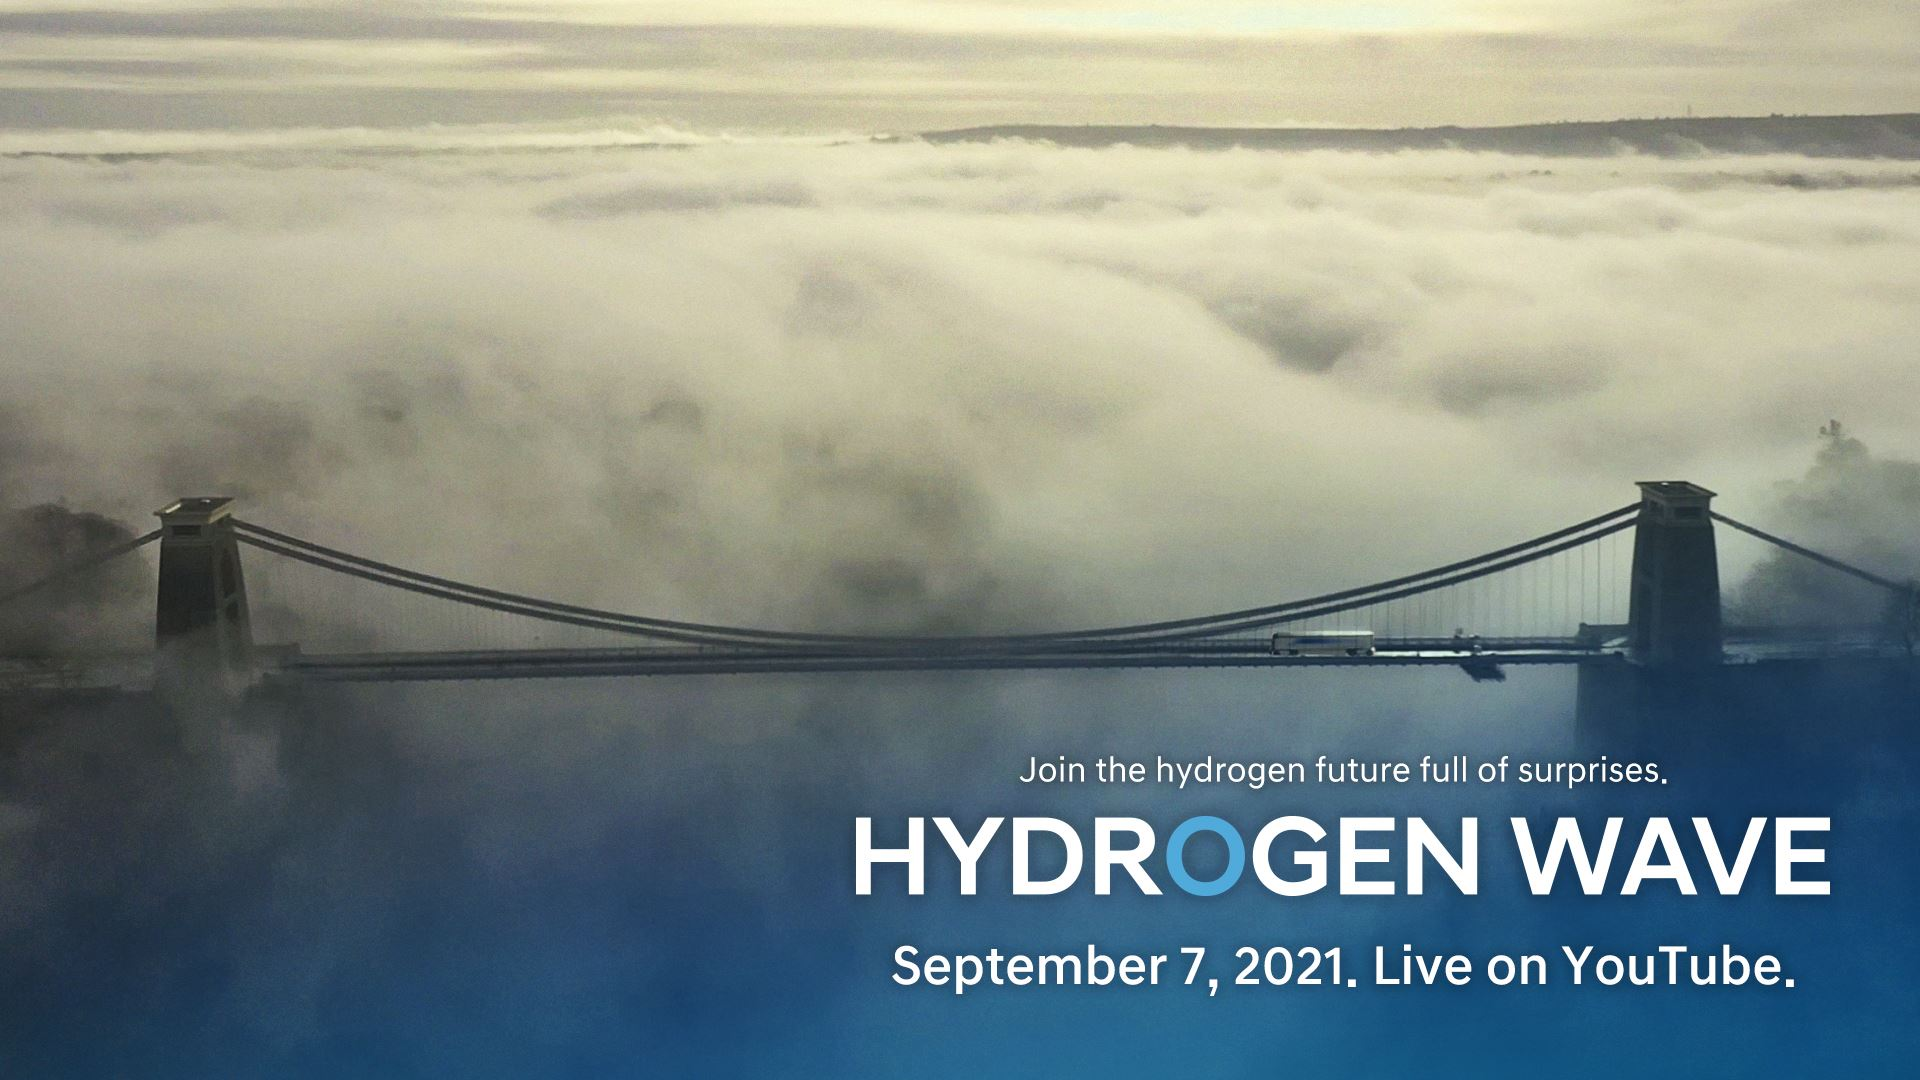 Hyundai Motor Group to Unveil its Future Vision for Hydrogen Society at the 'Hydrogen Wave' Global Forum in September - Image 1